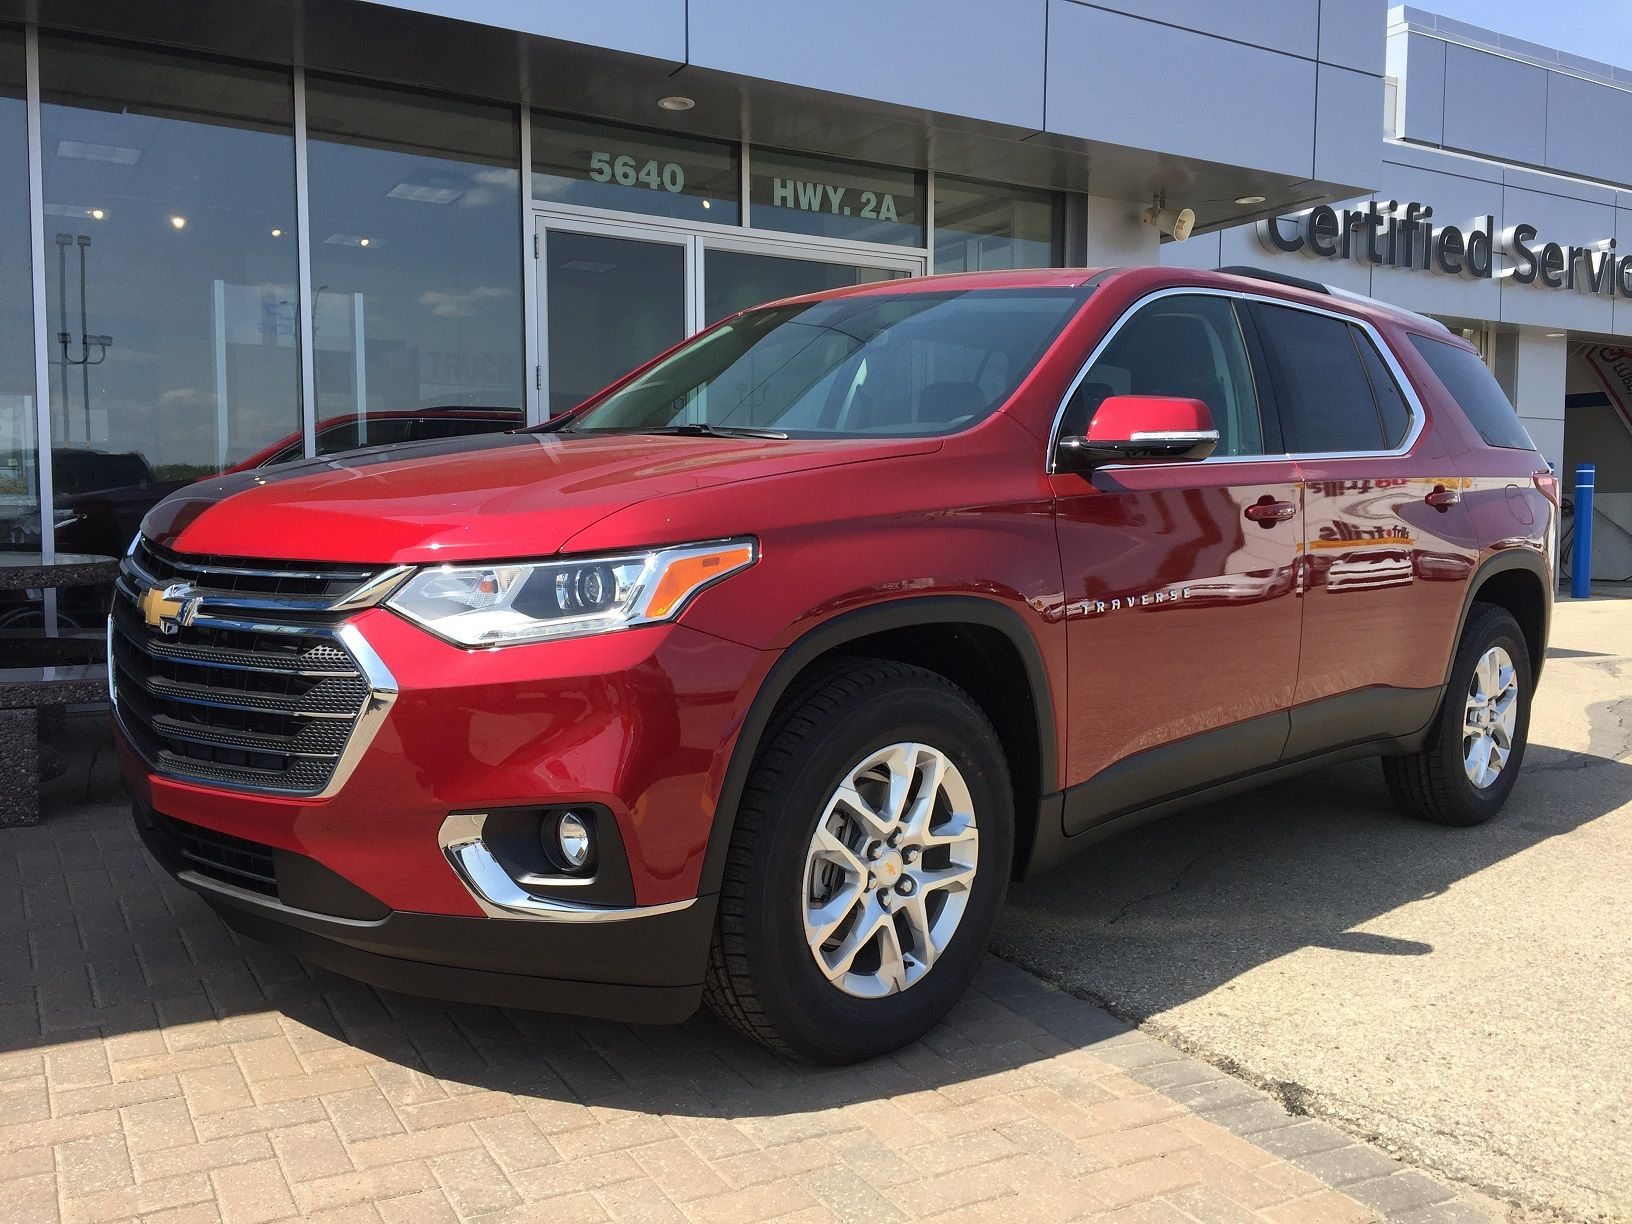 2018 Chevrolet Traverse Red Awd 7 Seater In 2020 Chevrolet